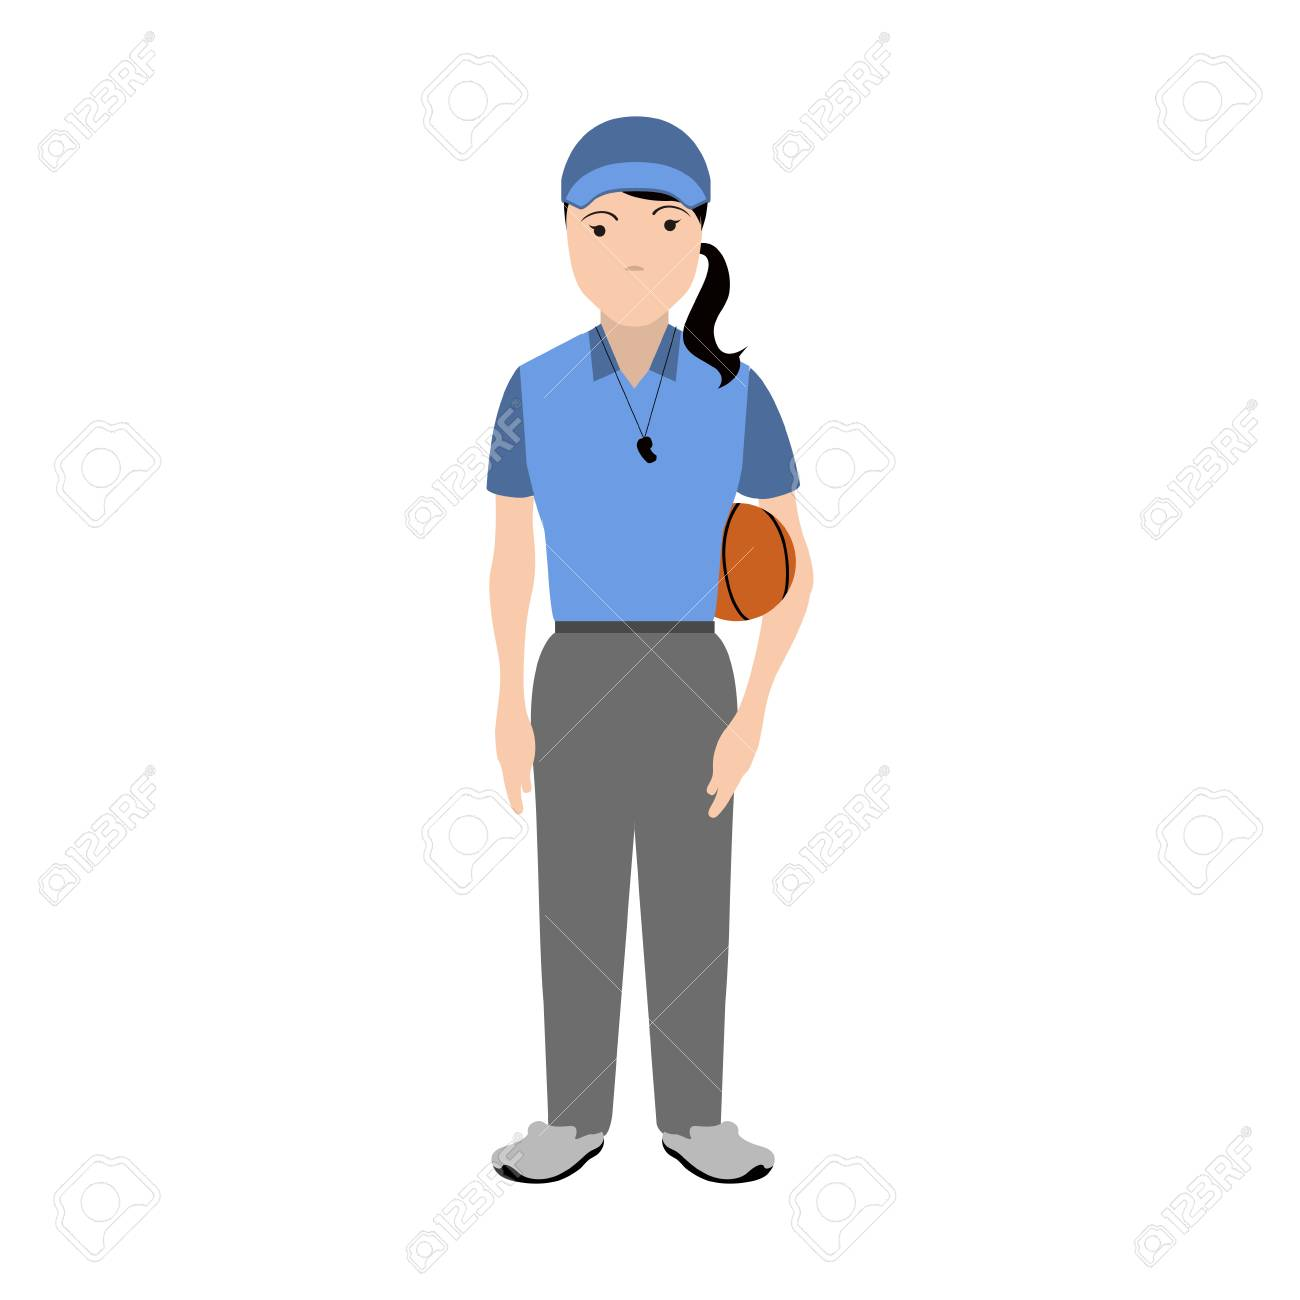 Isolated Physical Education Teacher Avatar Royalty Free Cliparts Vectors And Stock Illustration Image 103585798